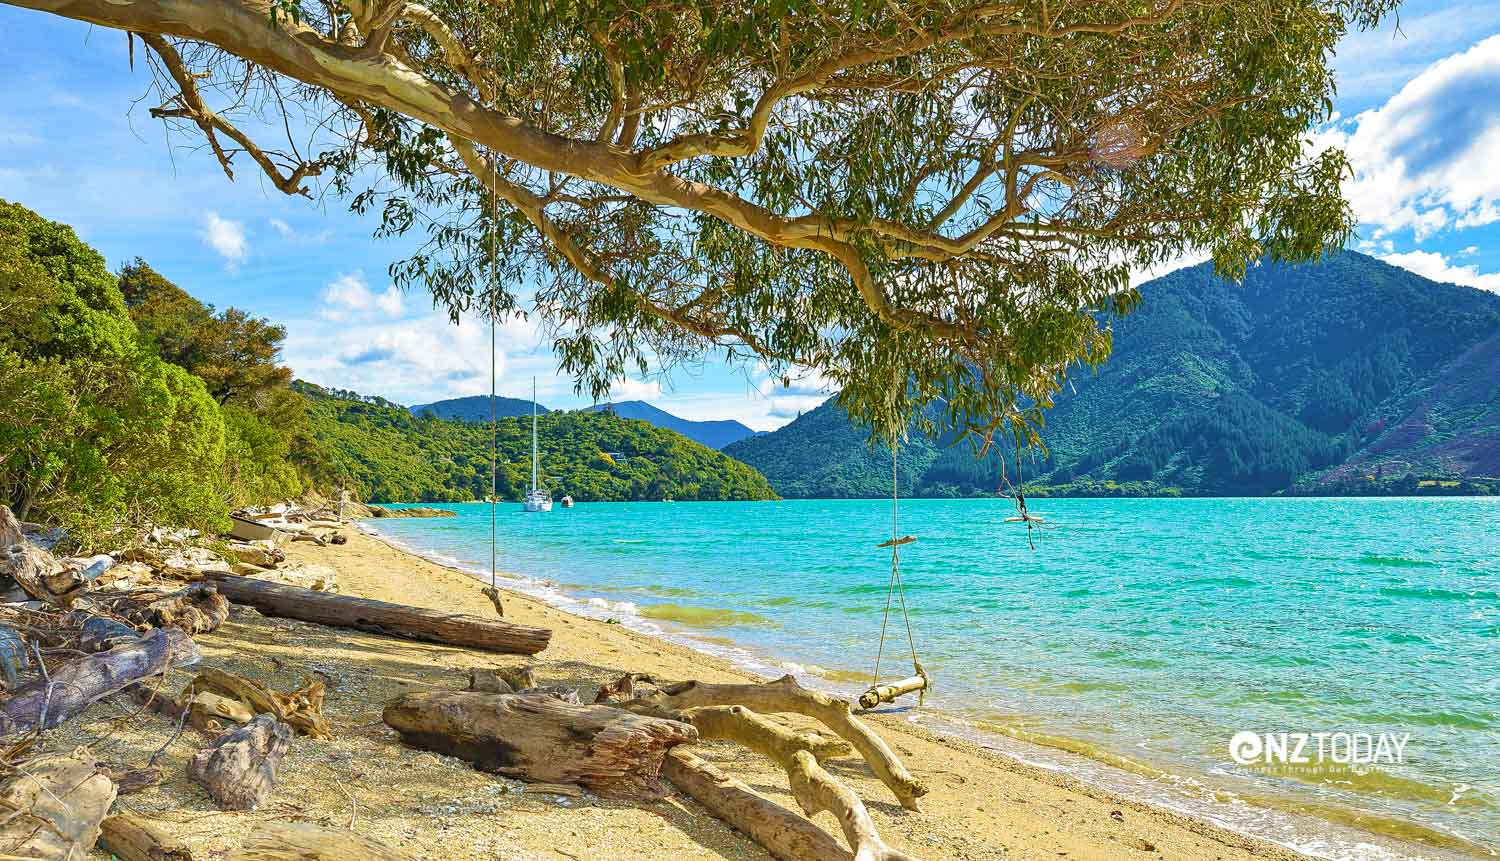 The Sounds are a relaxing place to unwind. Photo: Queen Charlotte Track Inc.